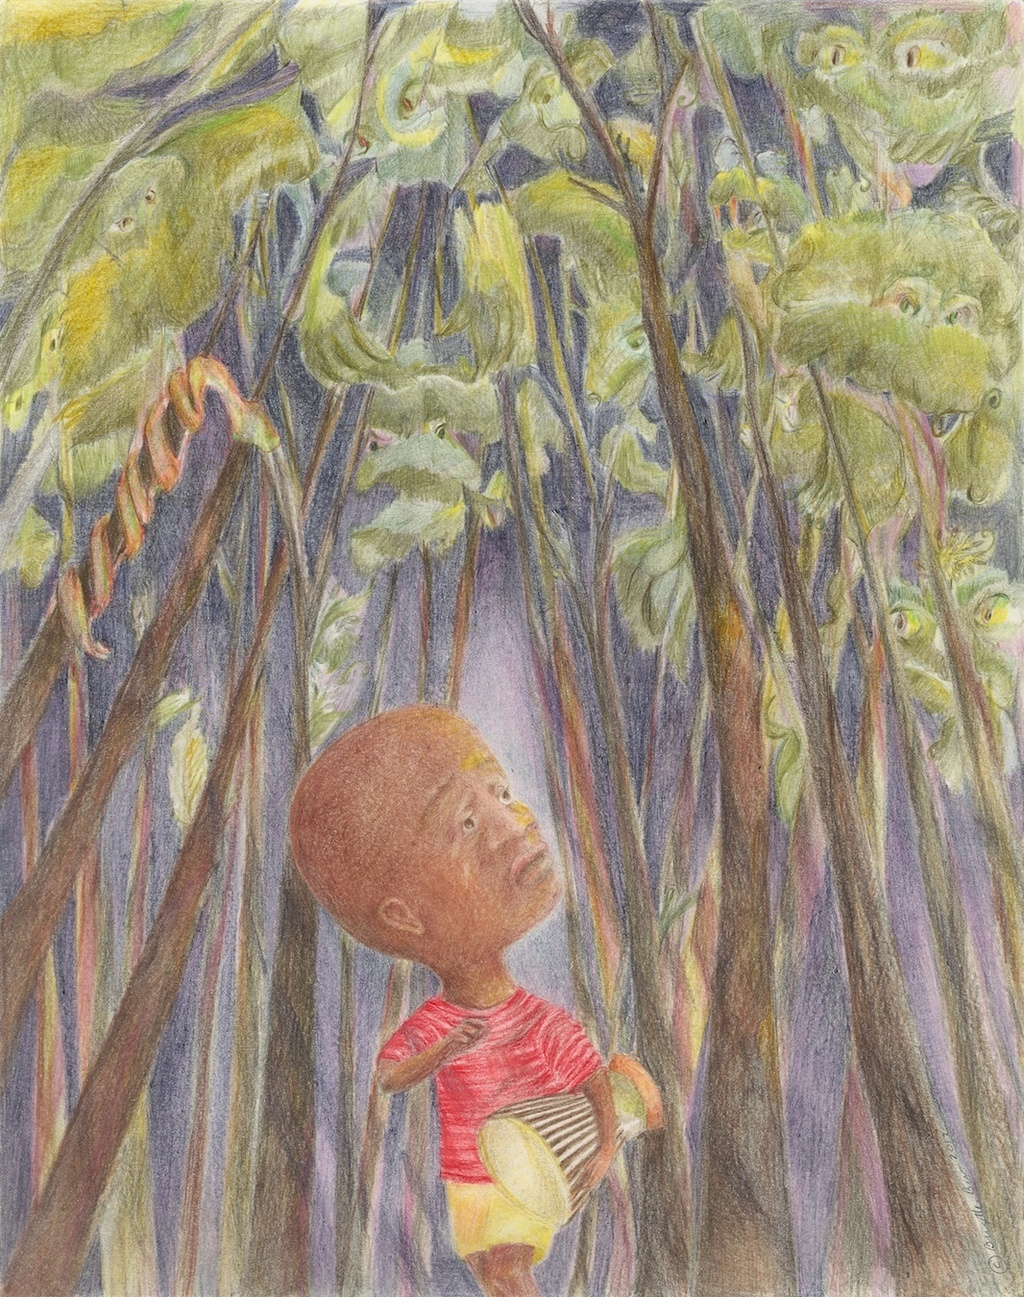 Okumu flees with the drum into the forest